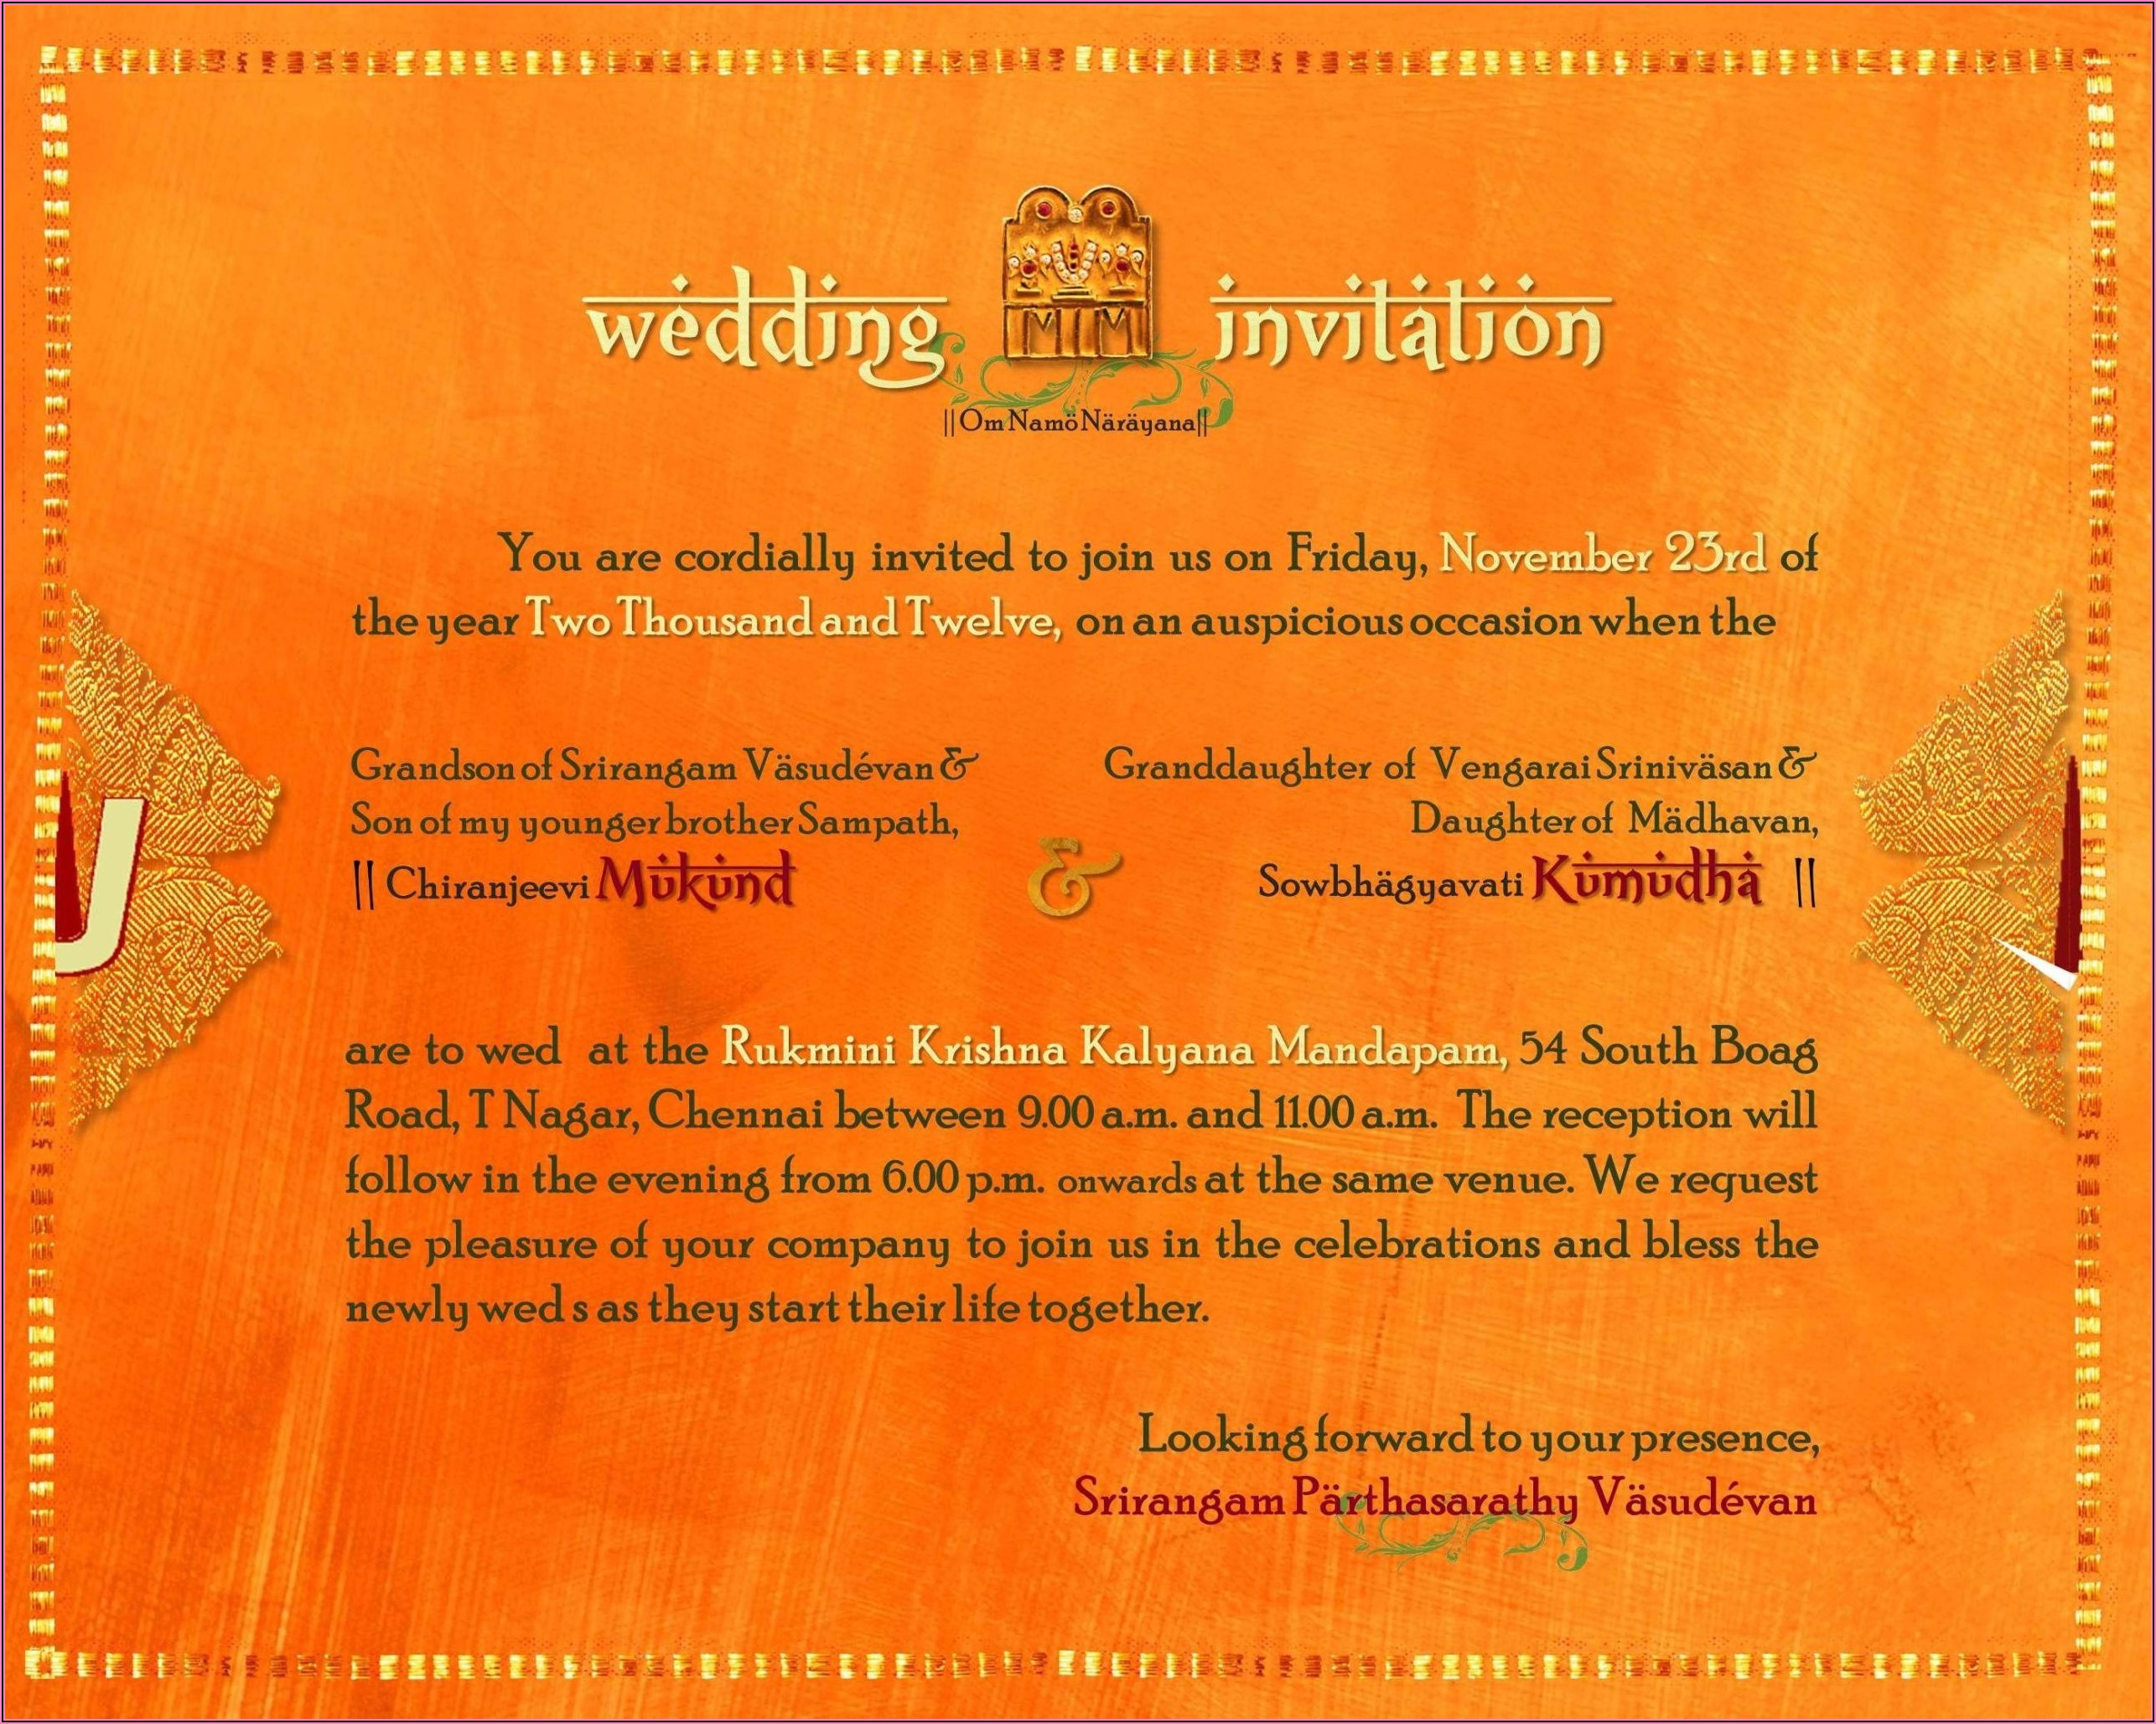 Housewarming Invitation Wording Samples In Tamil